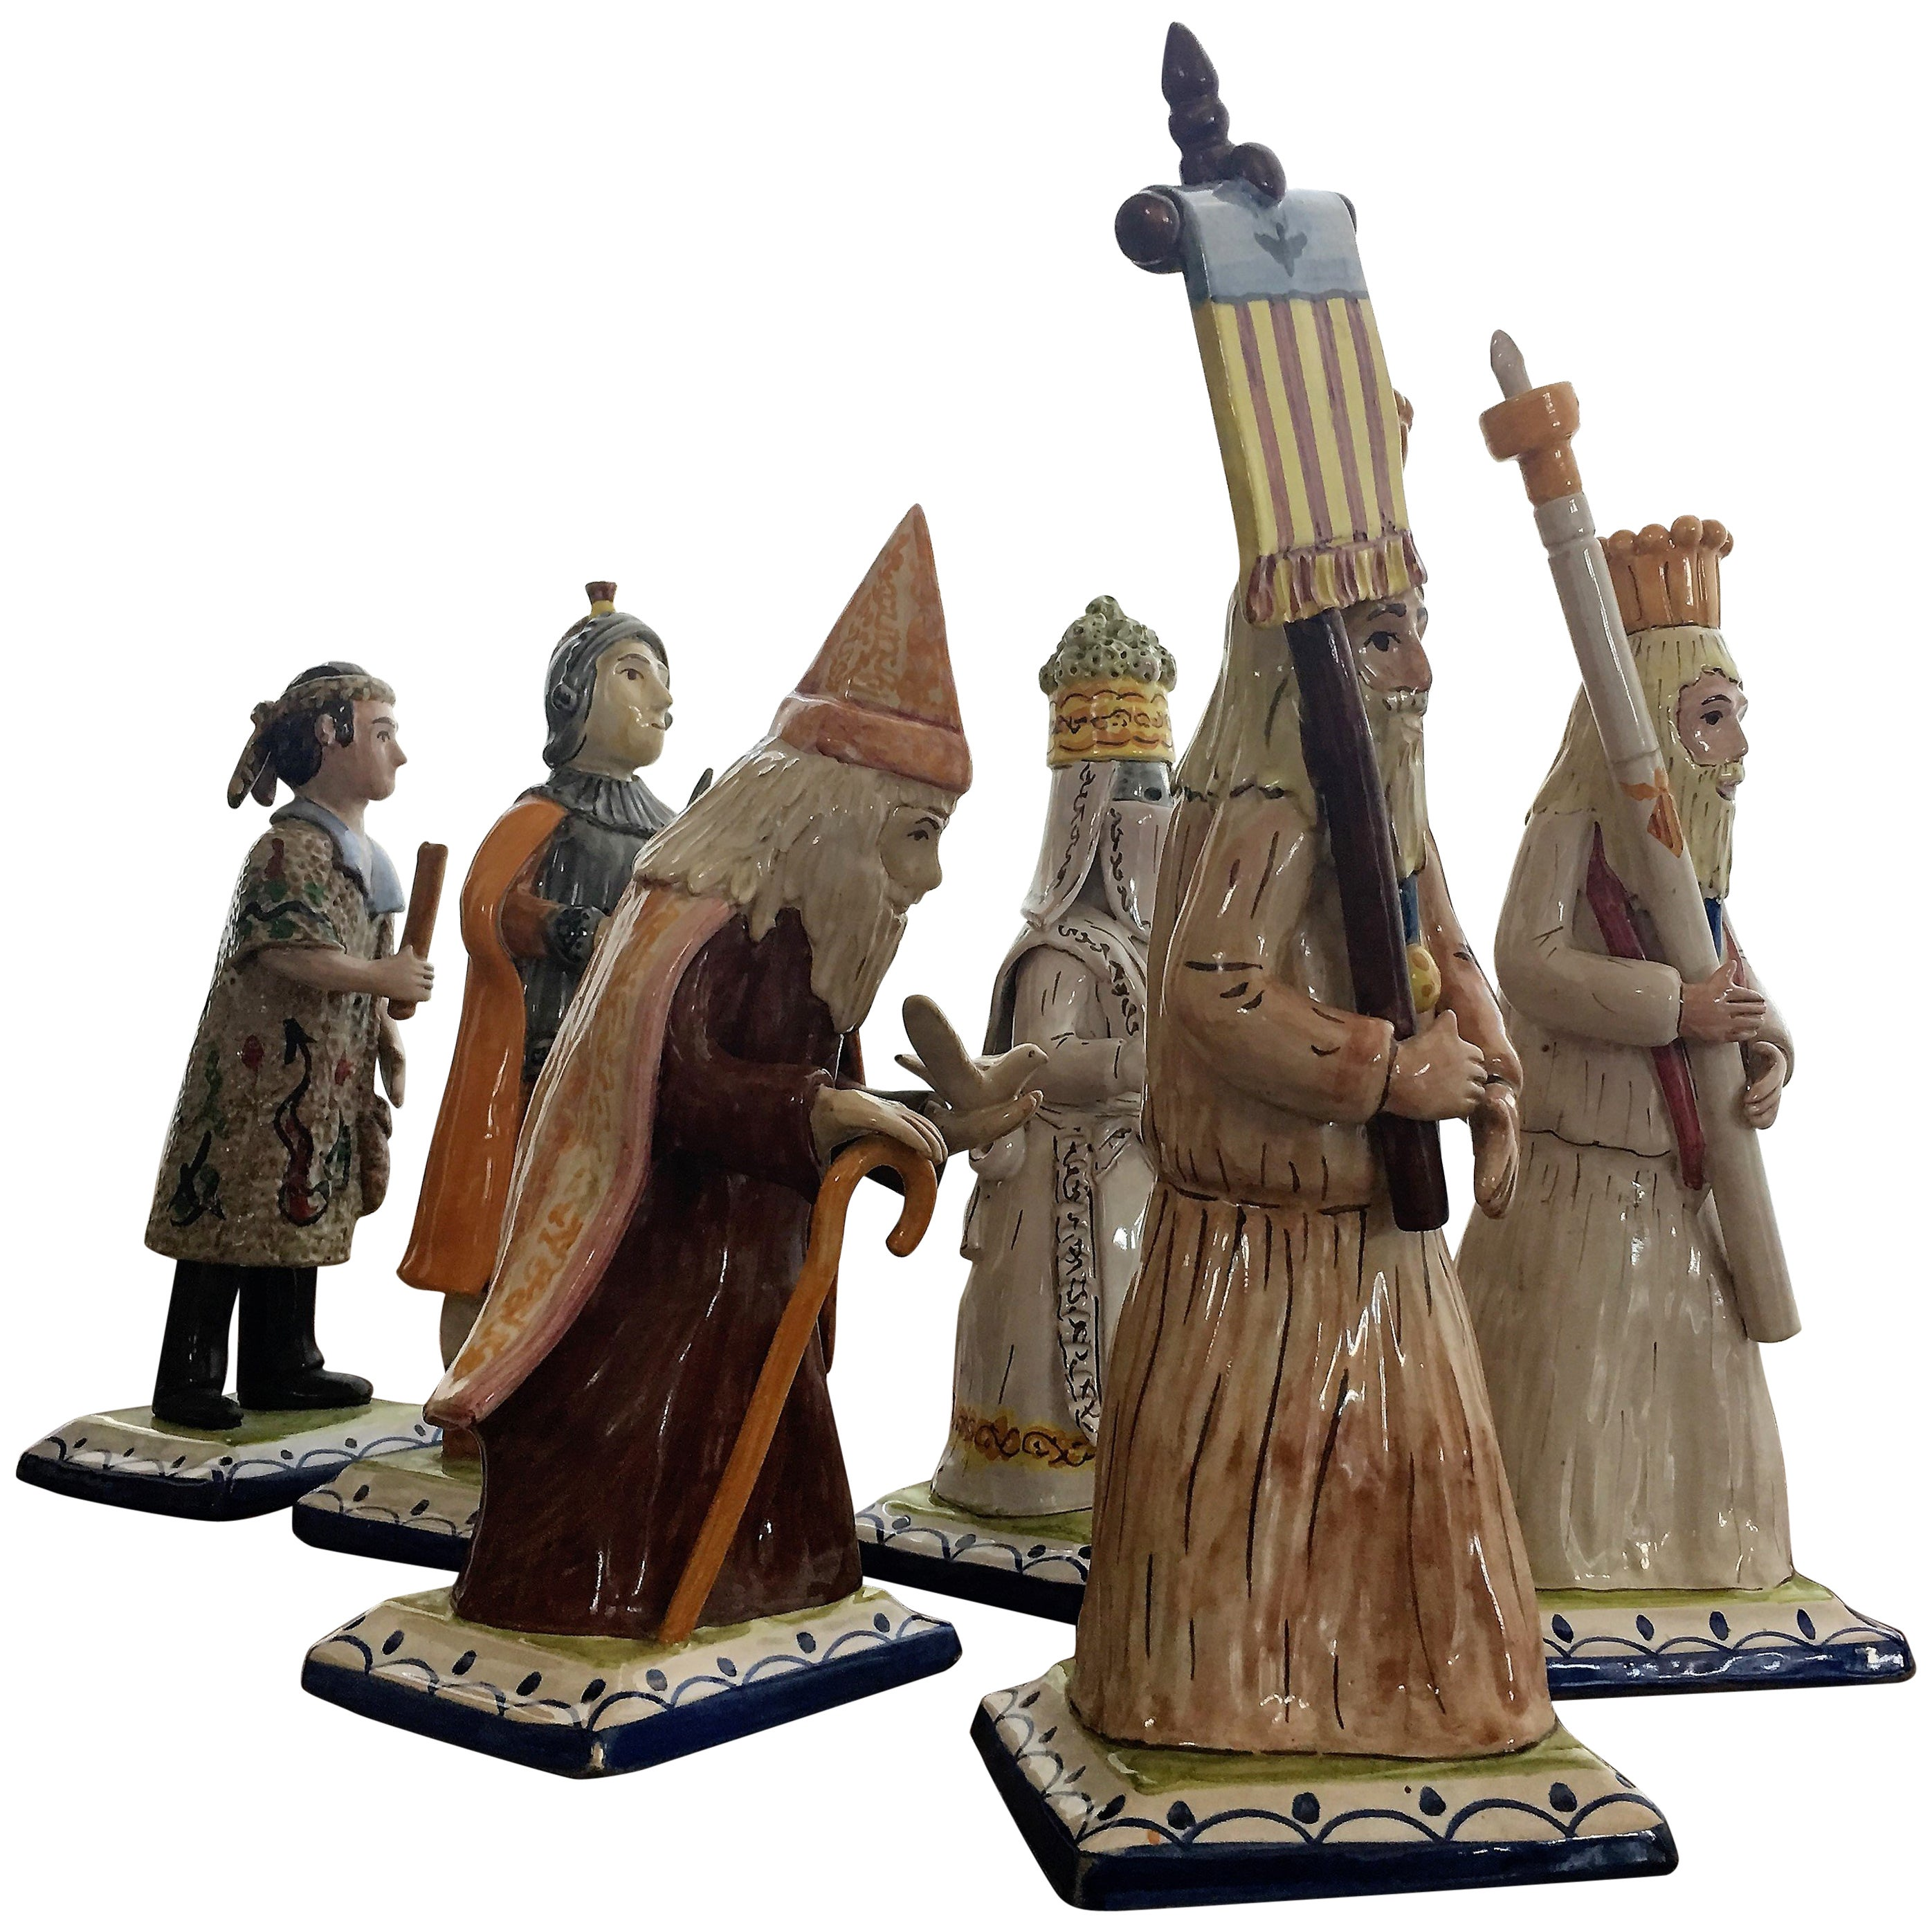 Set of Six Polychromed Figures Depicting the Processions of Holy Week